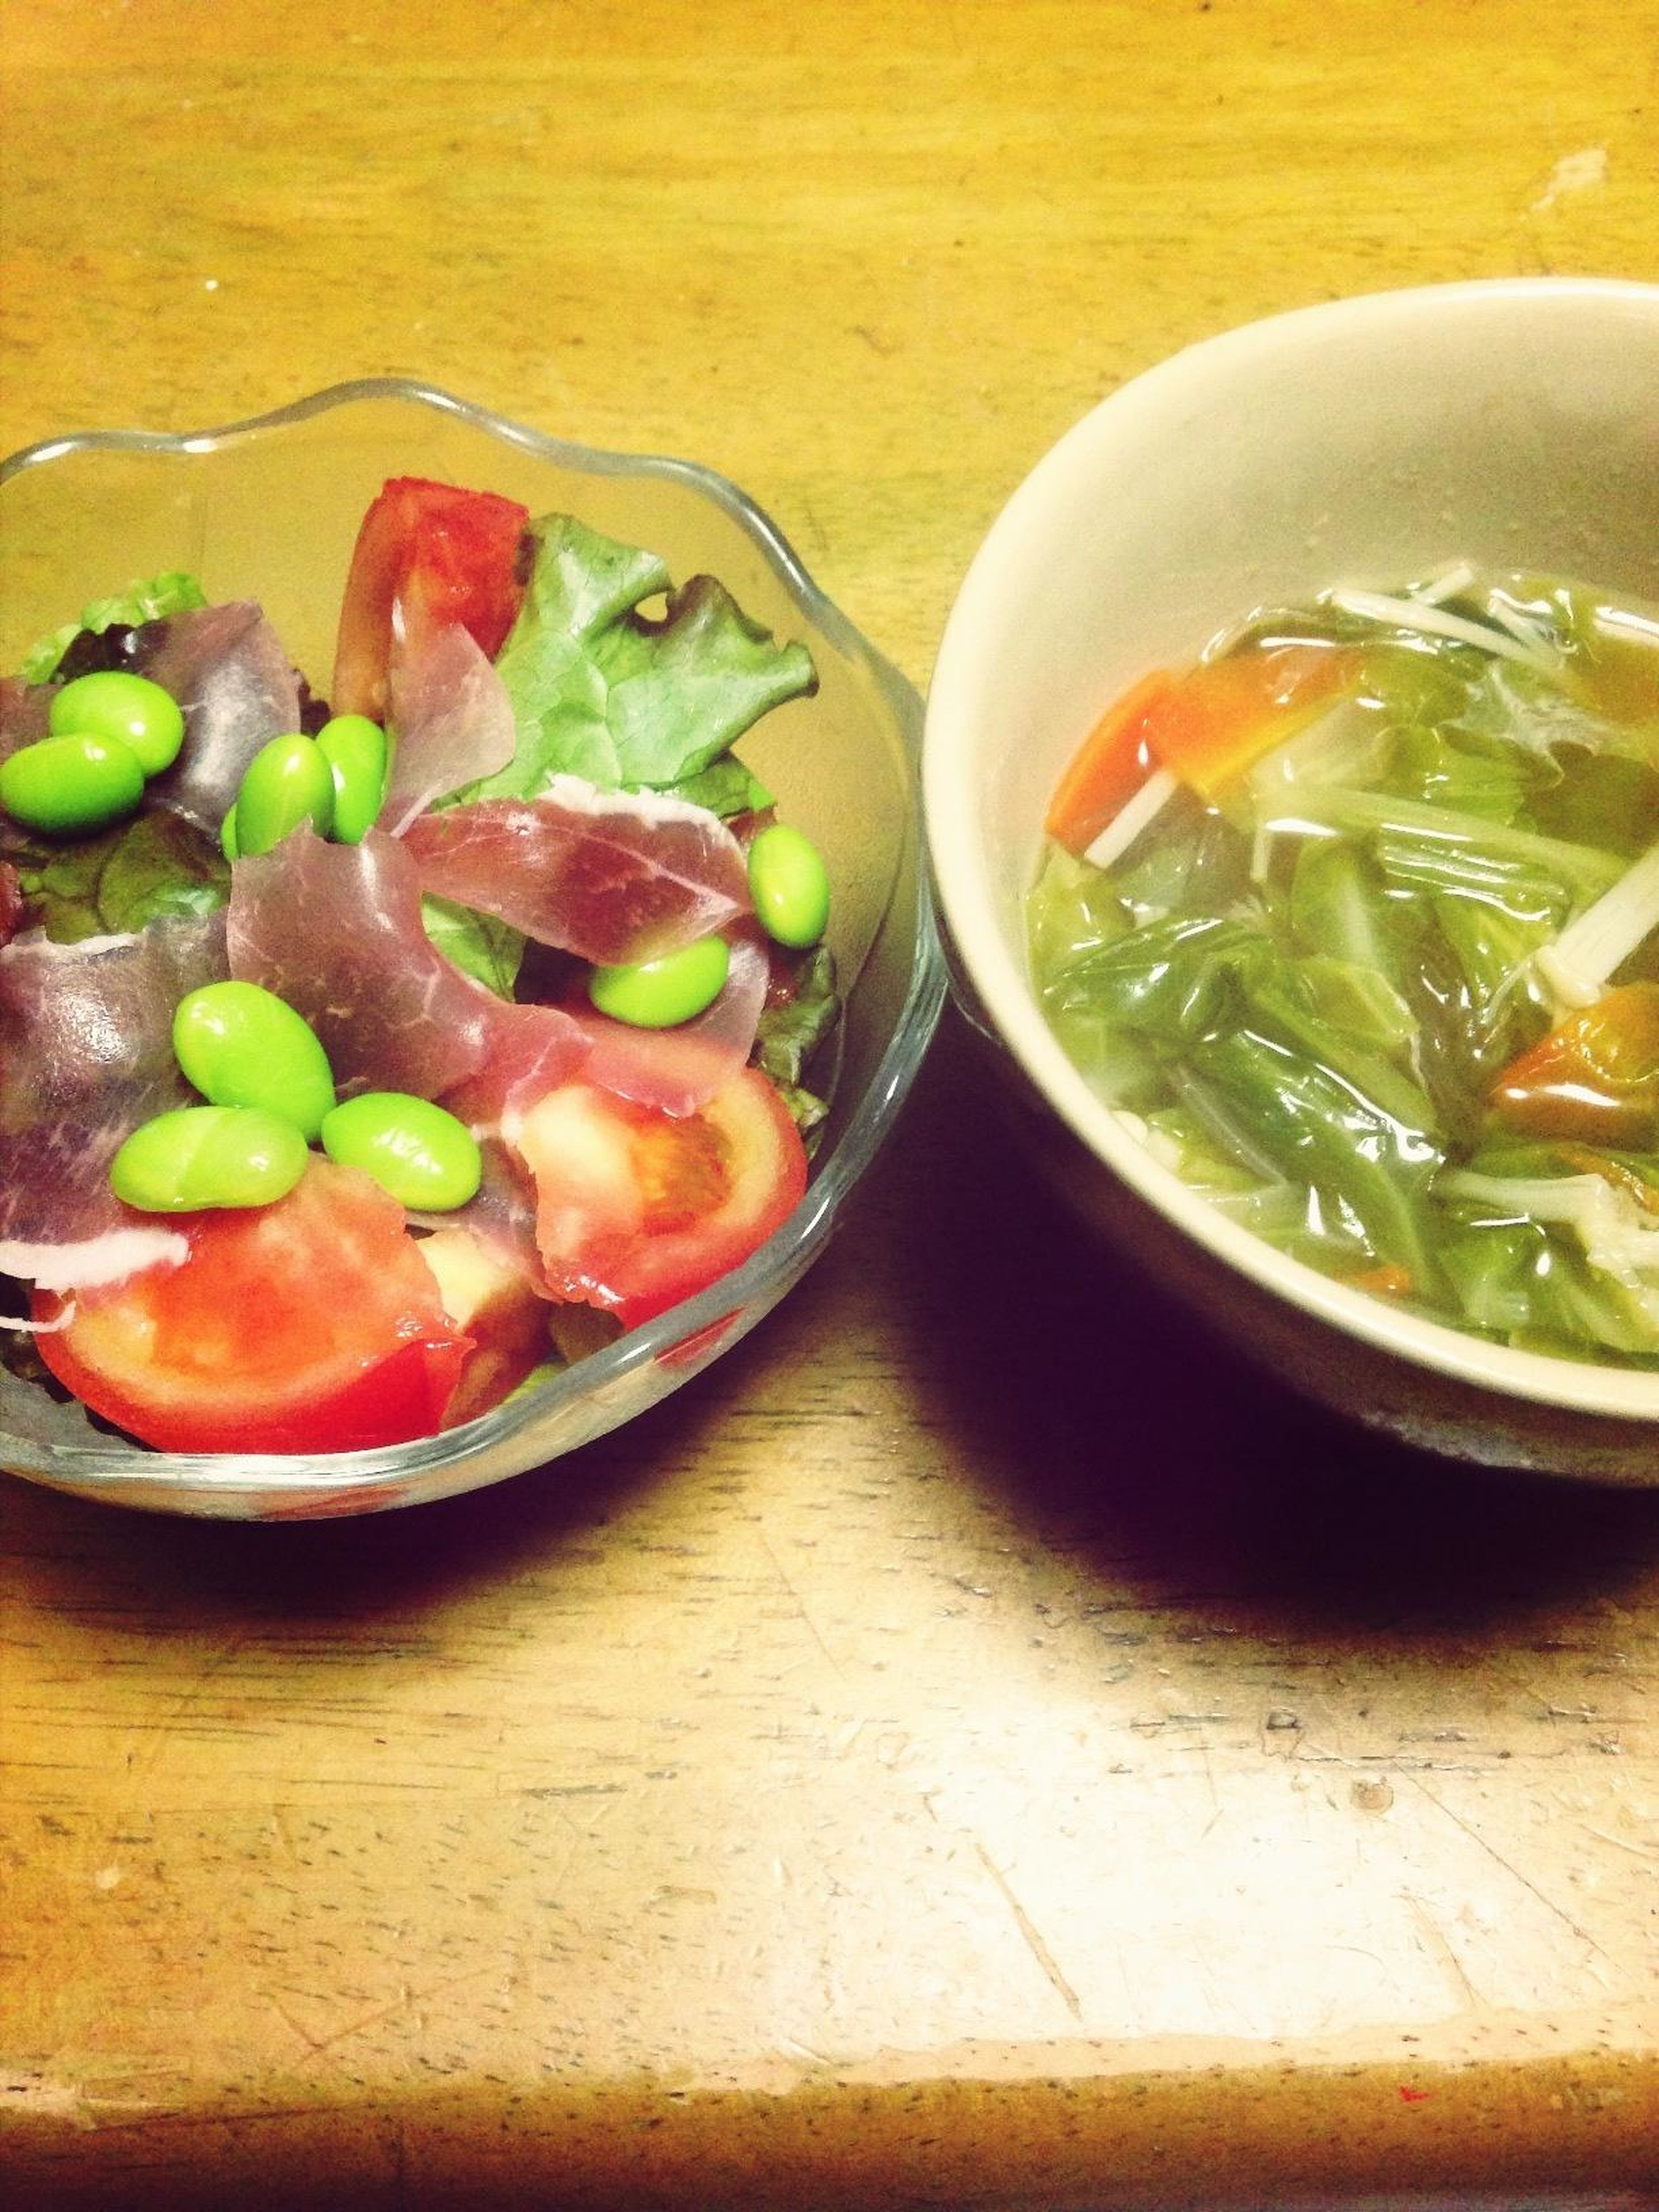 food and drink, food, freshness, healthy eating, indoors, table, bowl, still life, vegetable, ready-to-eat, high angle view, soup, plate, meal, serving size, salad, close-up, healthy lifestyle, slice, no people